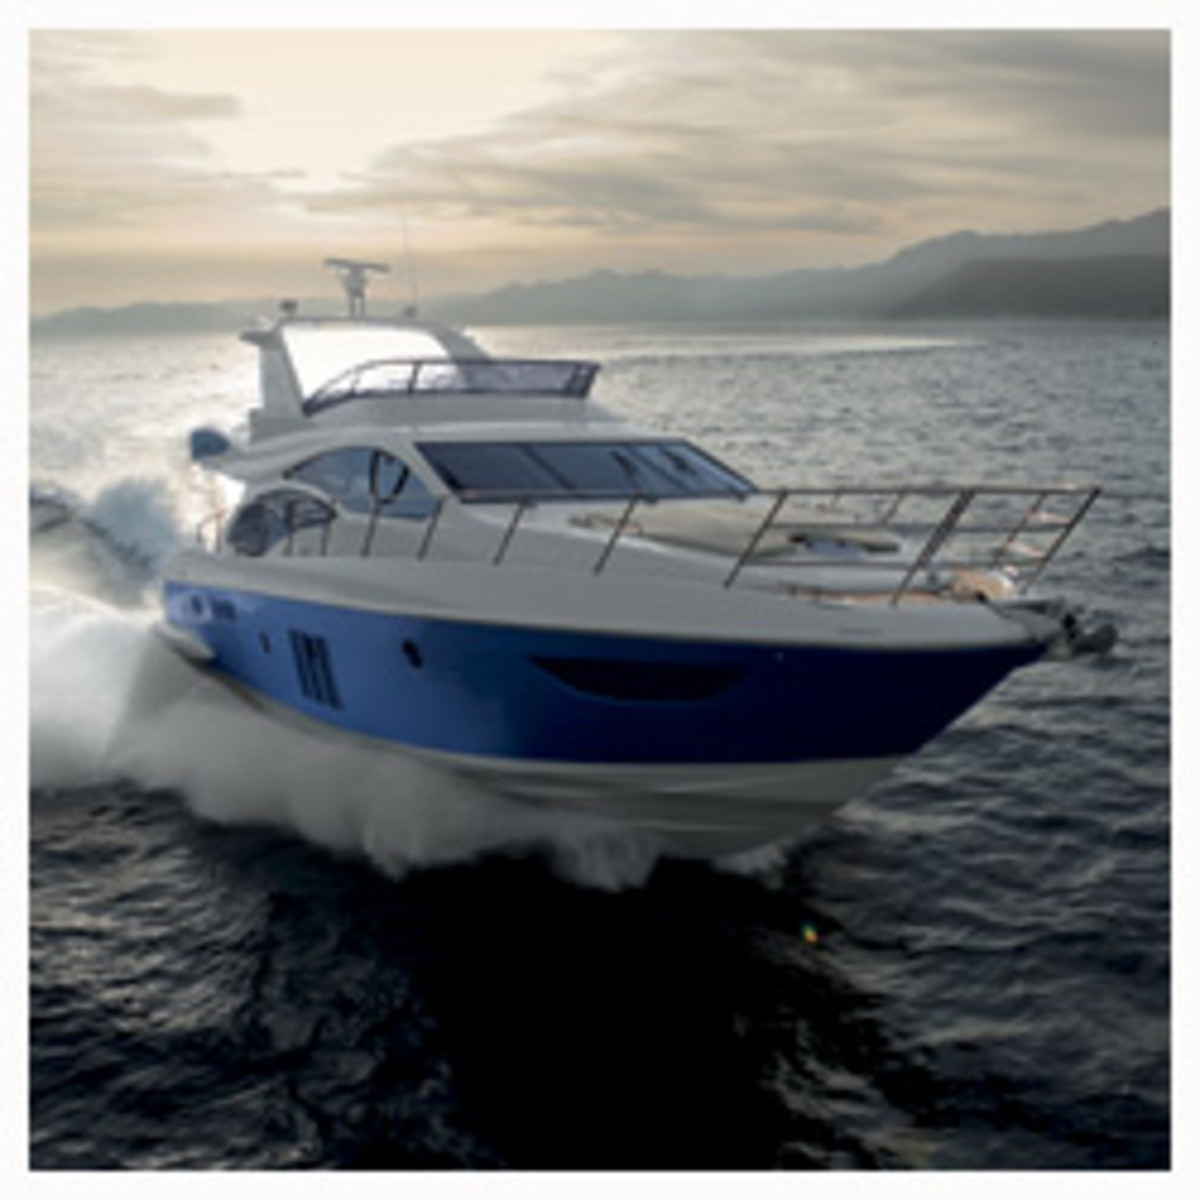 Click to see more photos of the Azimut 60